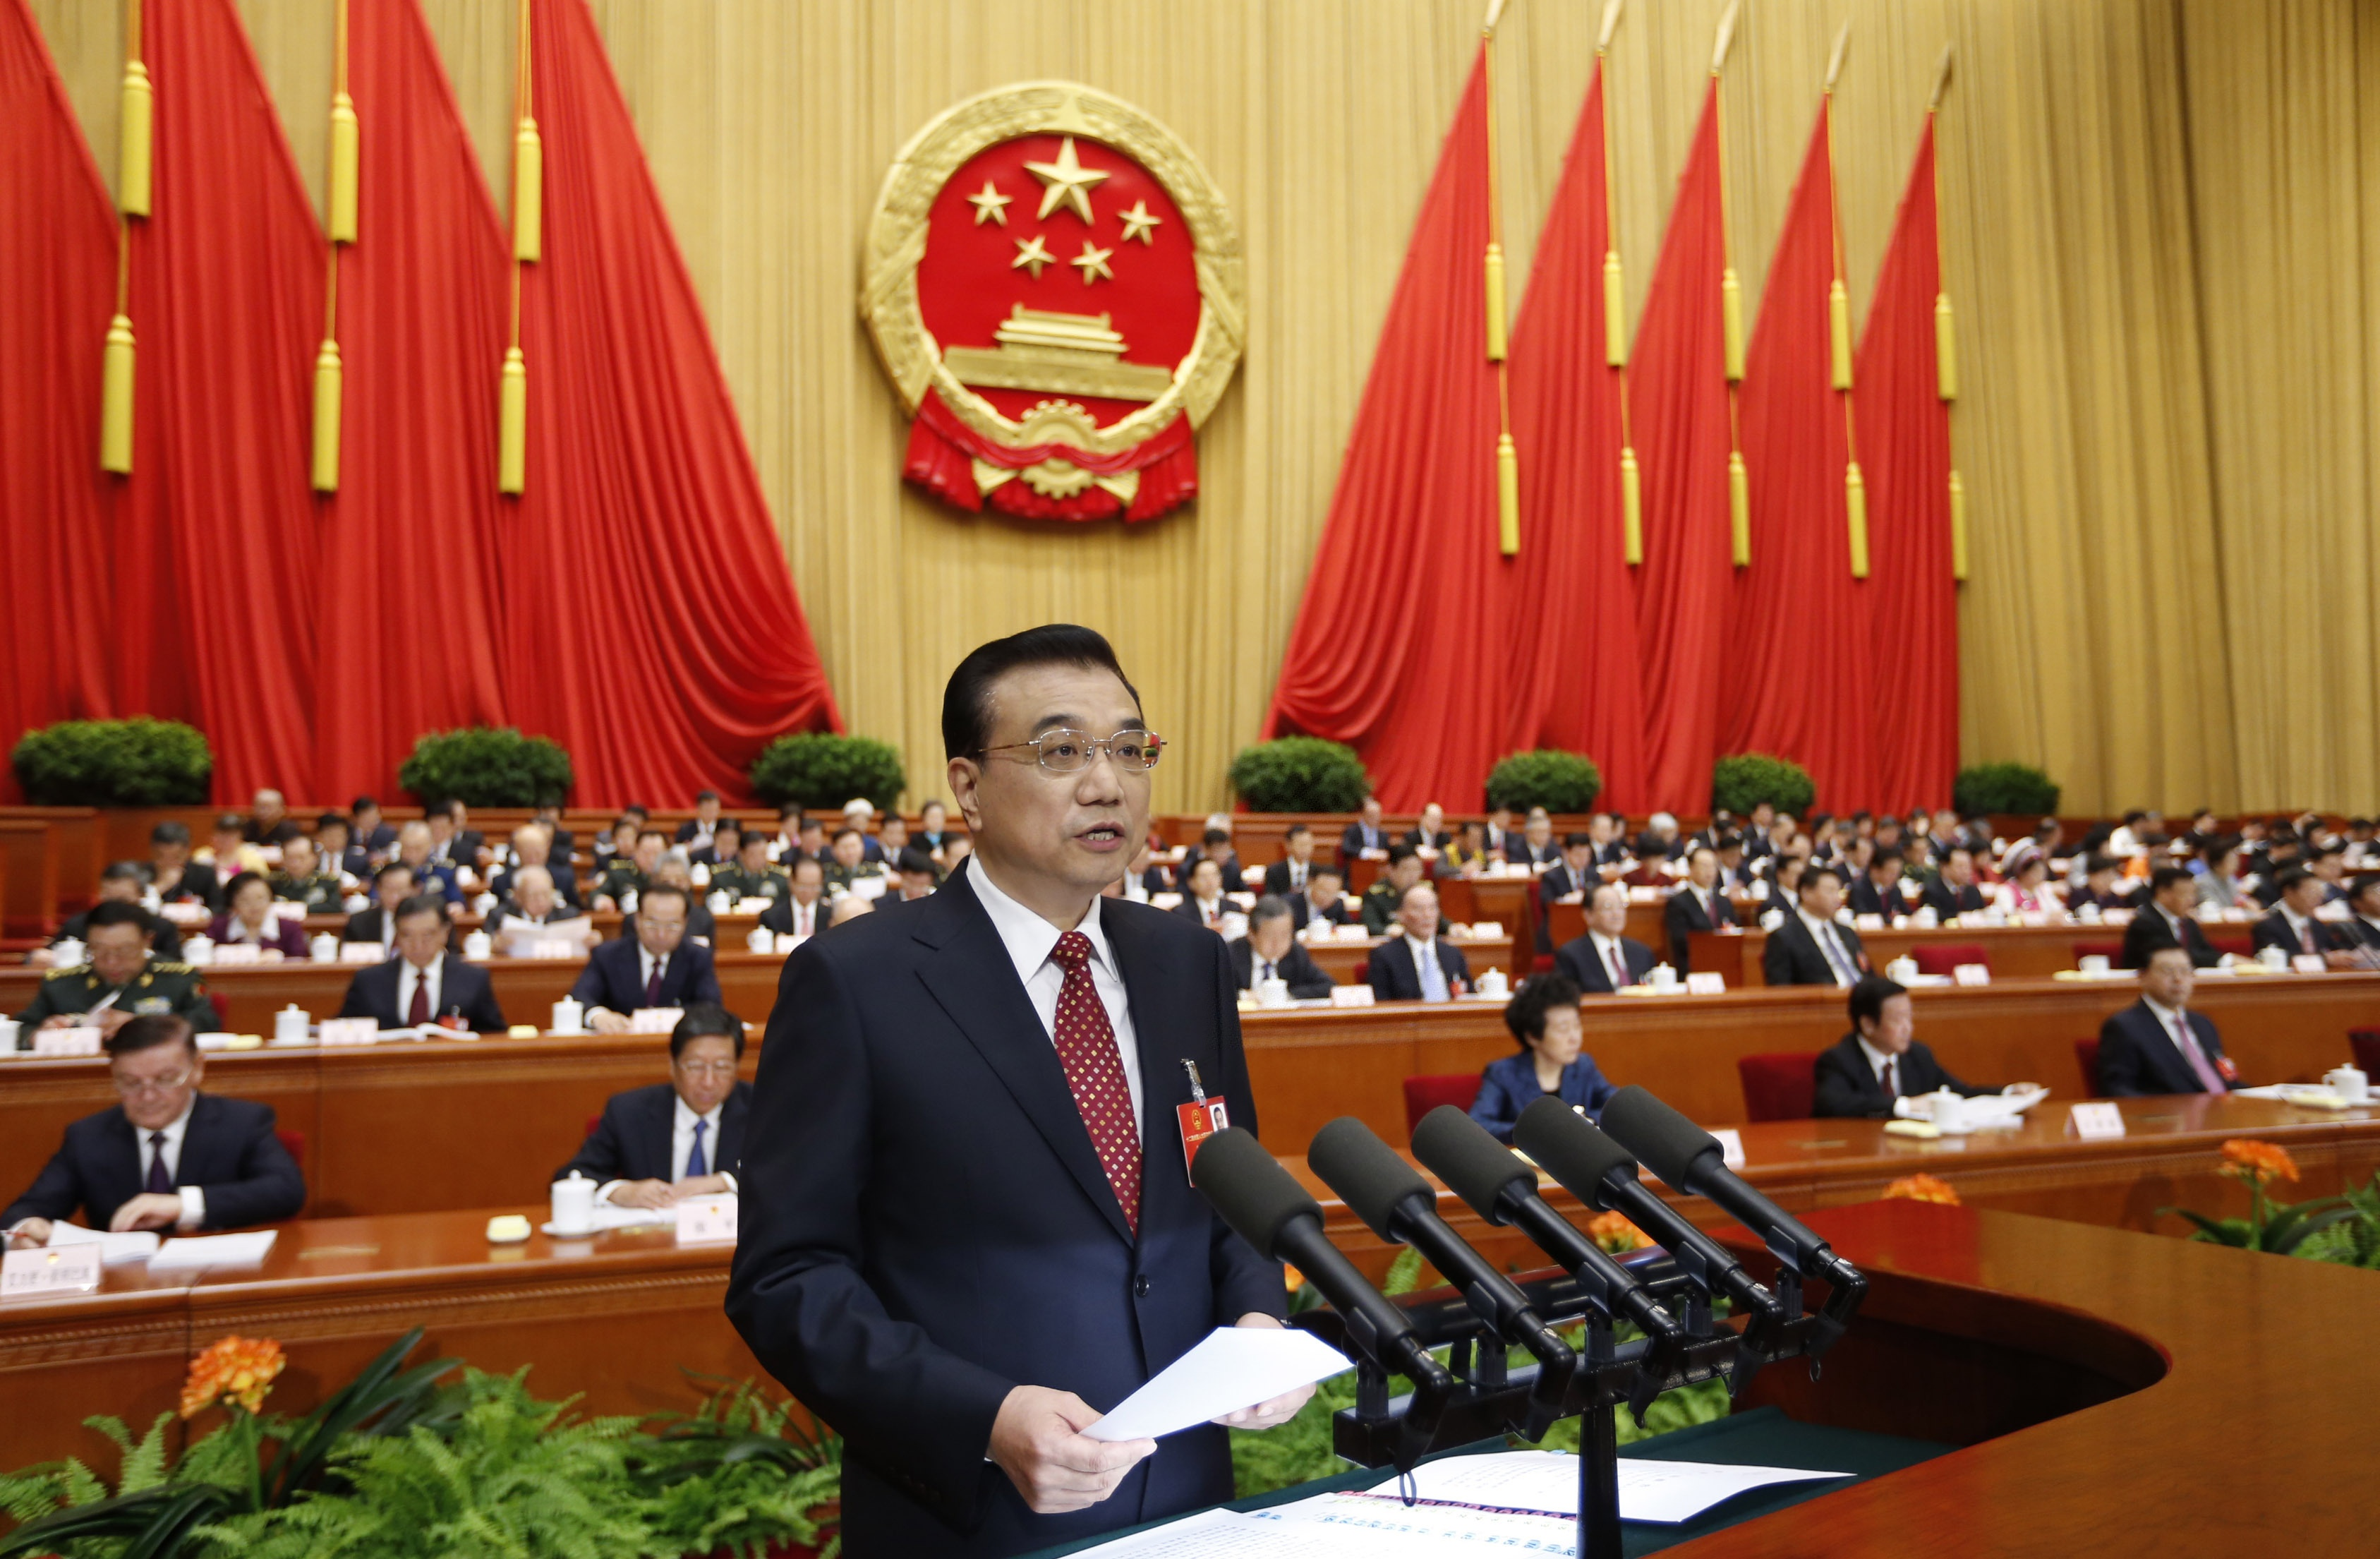 Live: Premier Li Keqiang delivers gov't work report at 12th NPC session